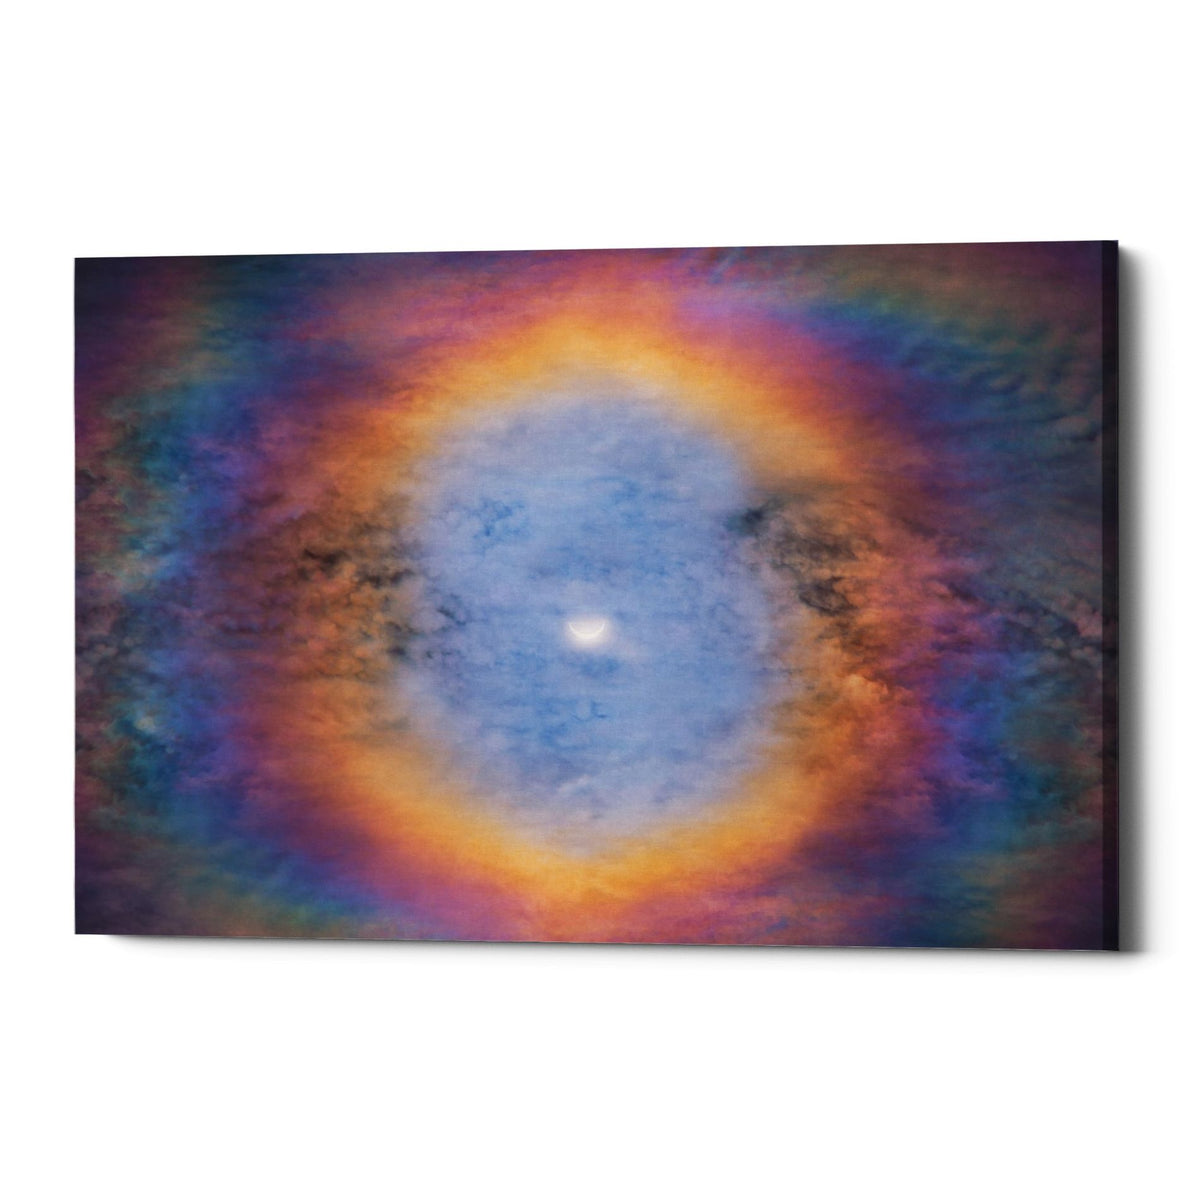 "Epic Graffiti ""Eye of the Eclipse"" by Darren White, Giclee Canvas Wall Art"